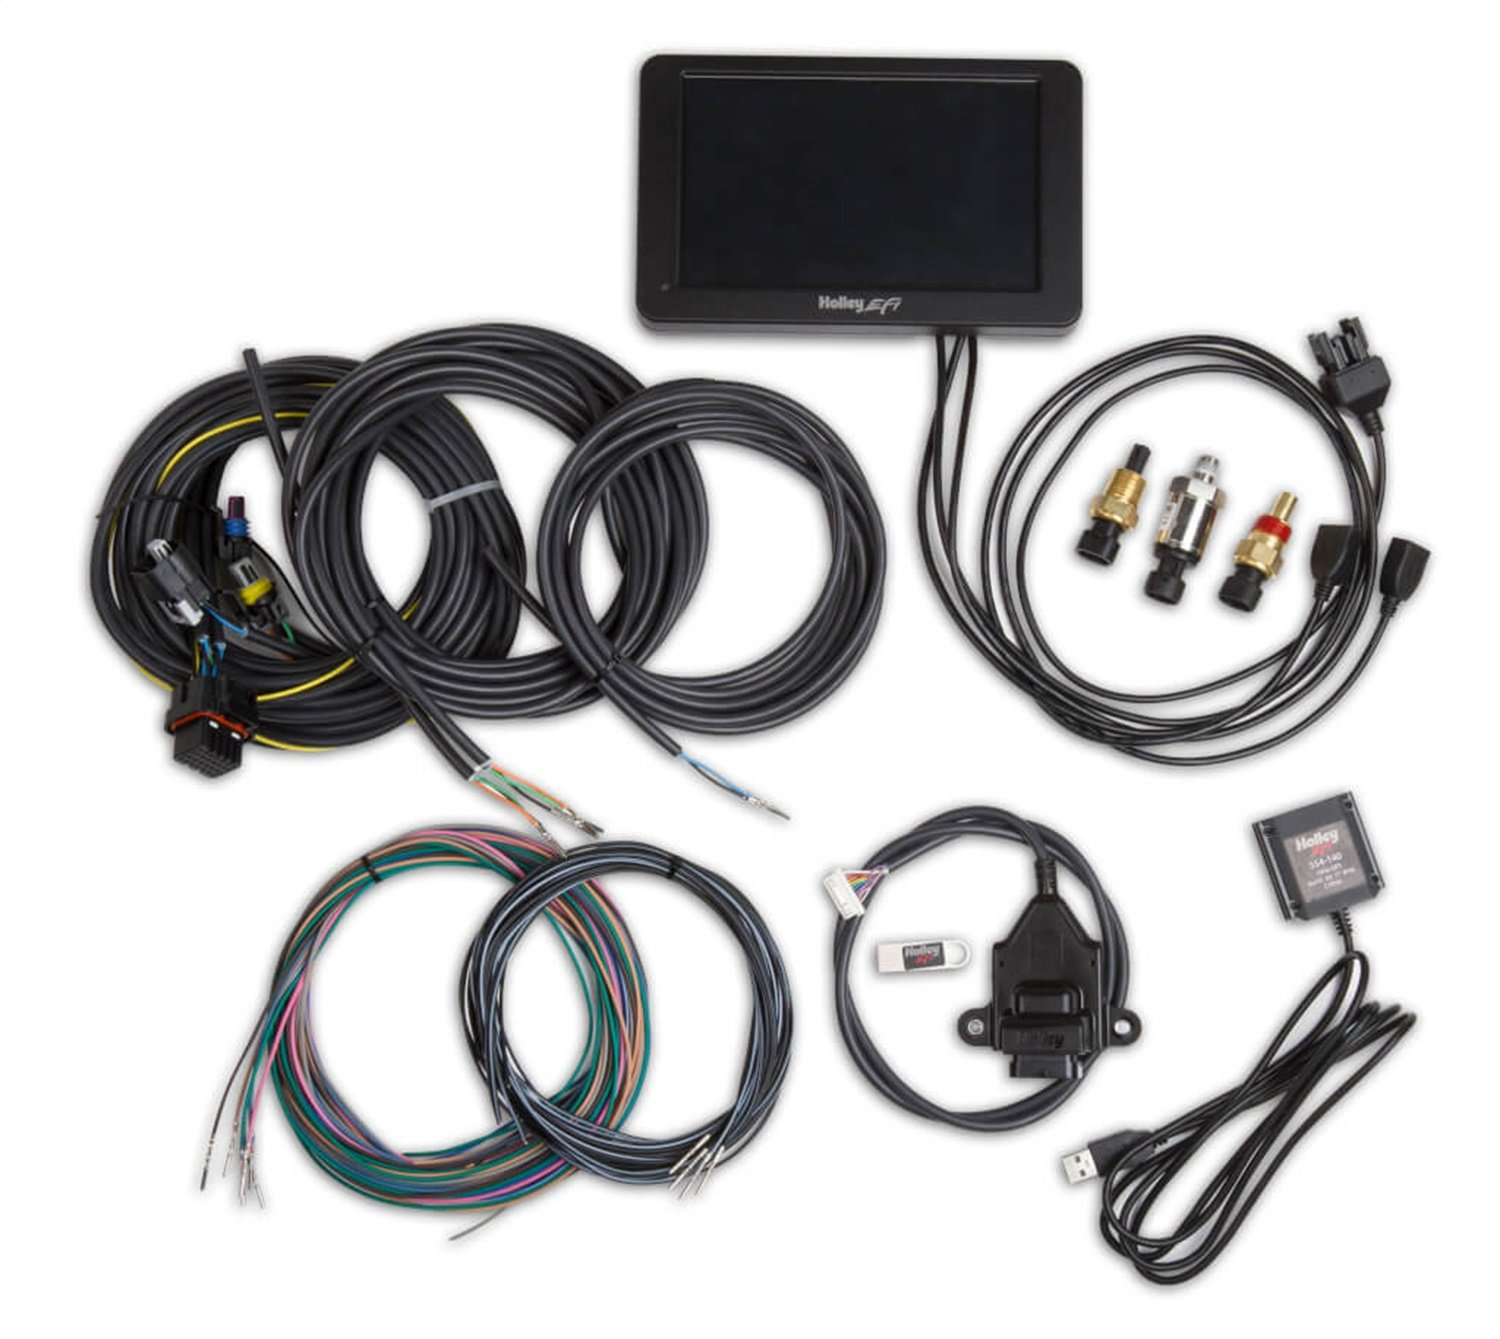 Holley 553-109 Holley EFI Digital Dash 7 in. Full Color Touch Screen Multiple Gauge/Indicator Types Limitless Customization Holley EFI Digital Dash